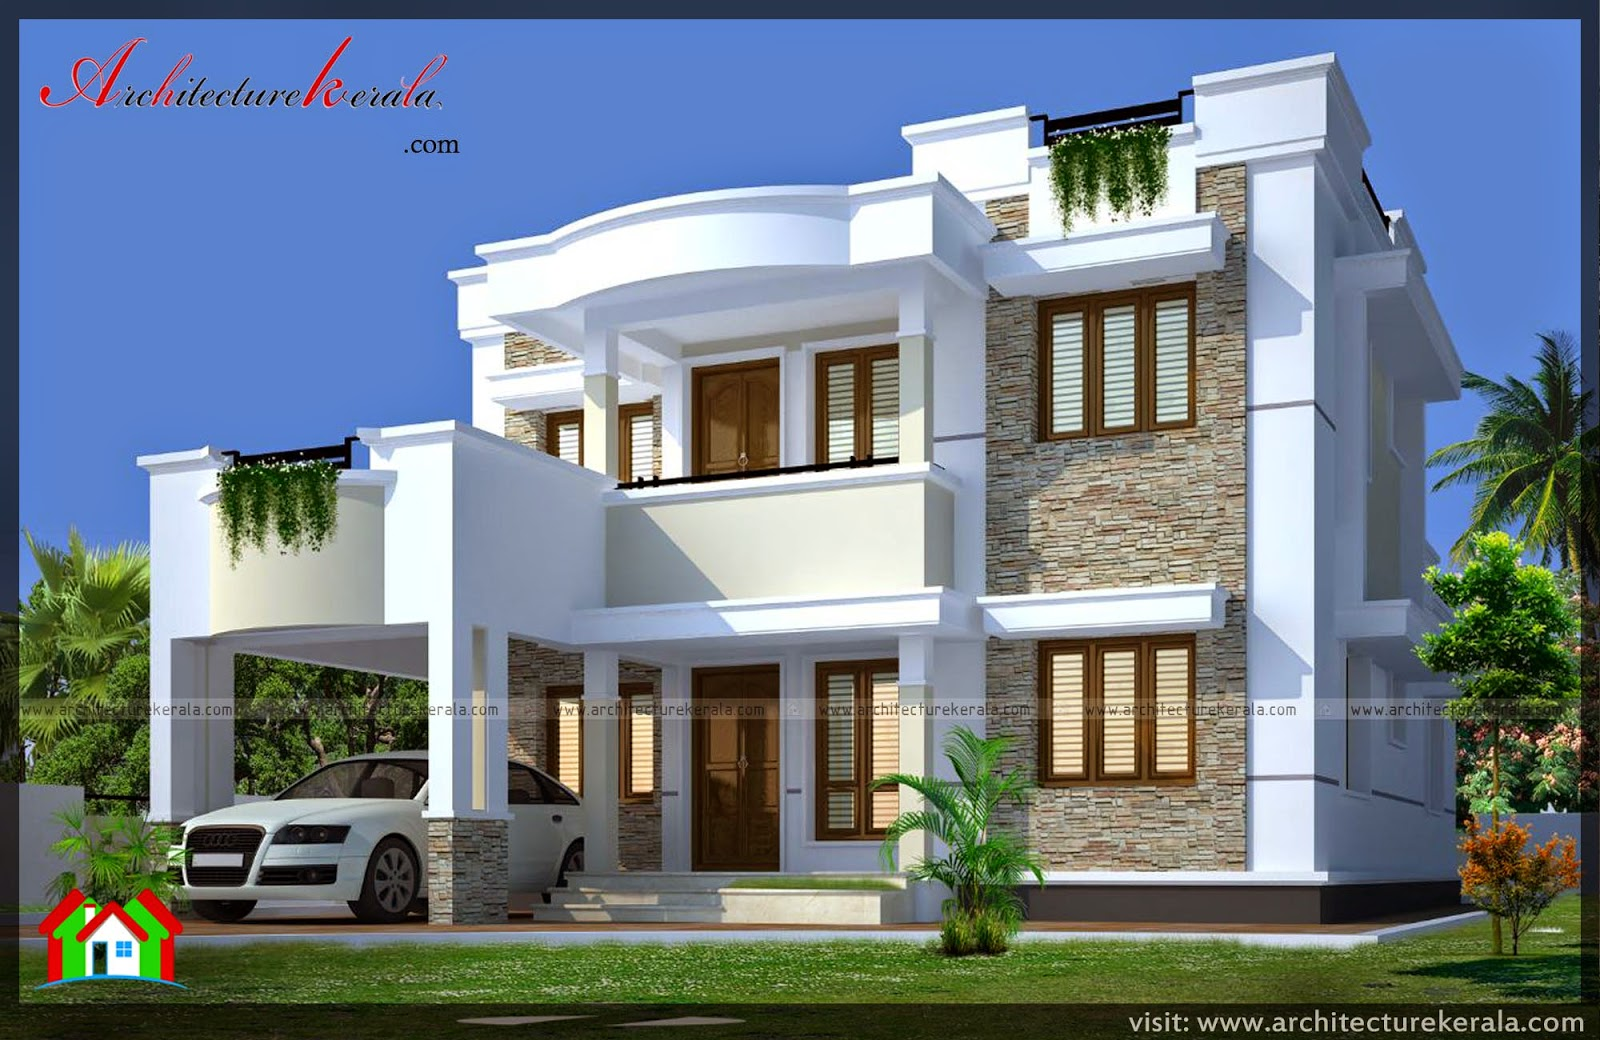 Architecture kerala 3 bhk single floor kerala house plan for New kerala house plans with front elevation